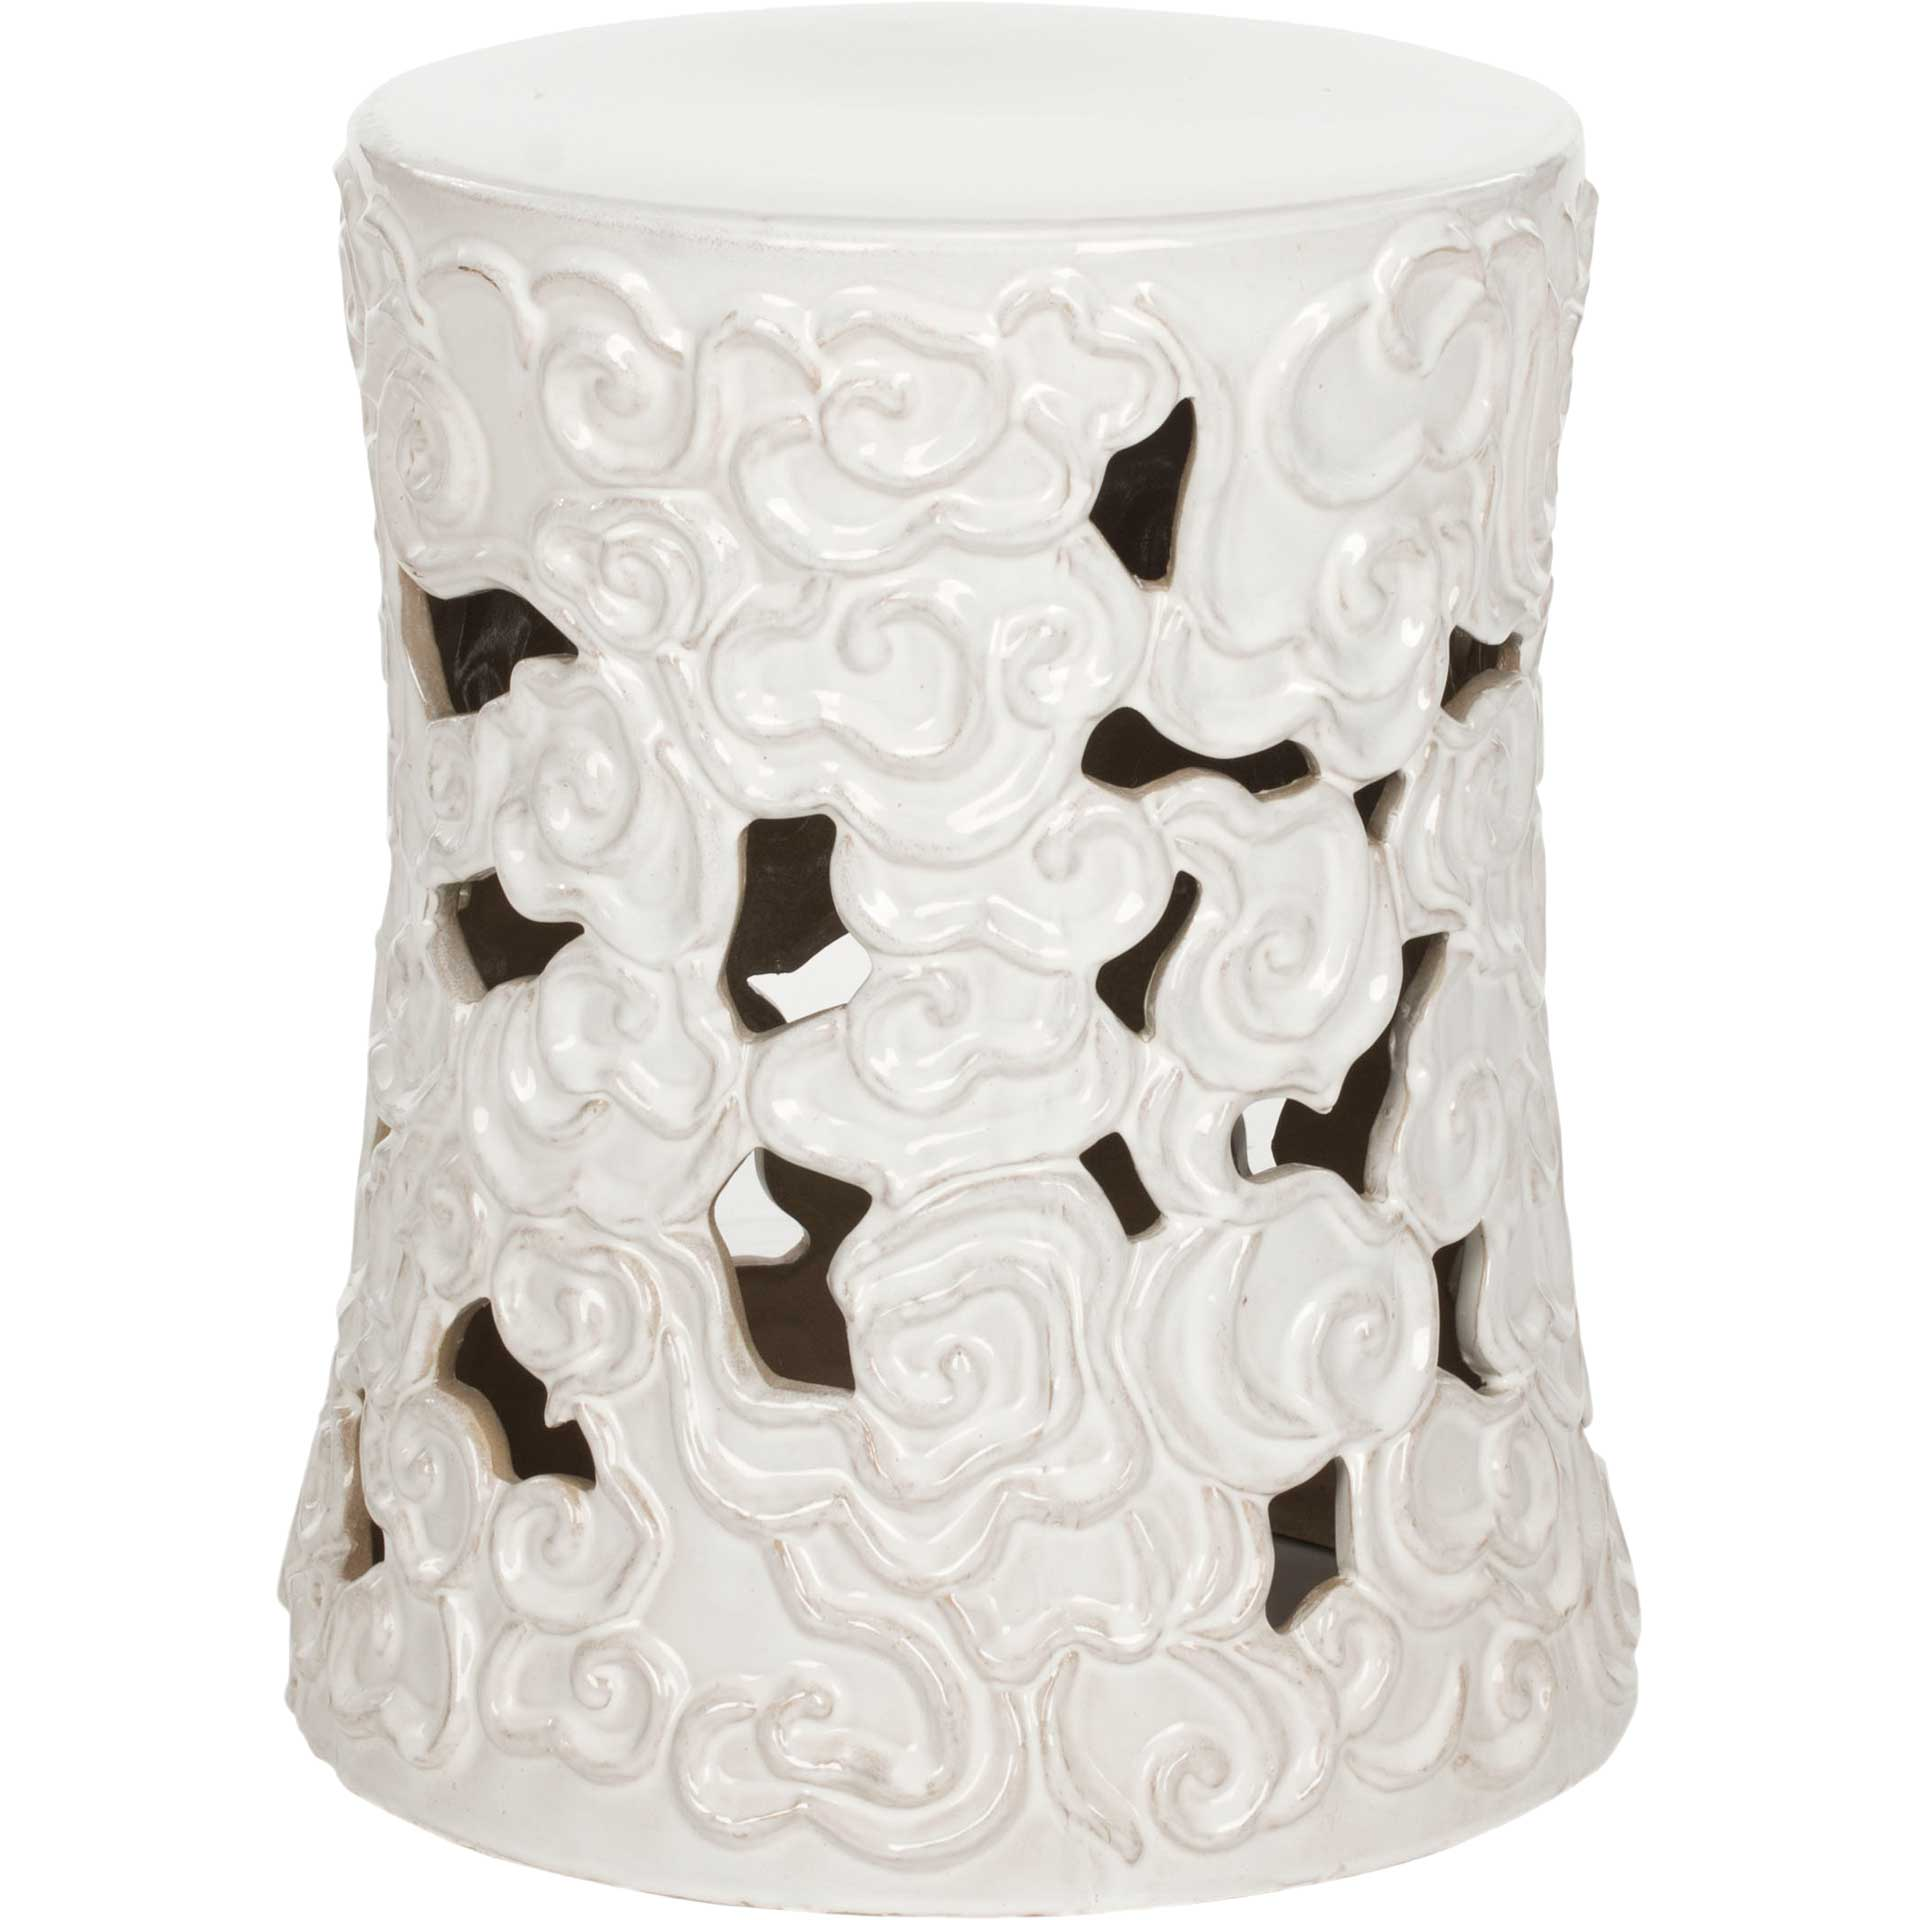 Cloud Garden Stool White